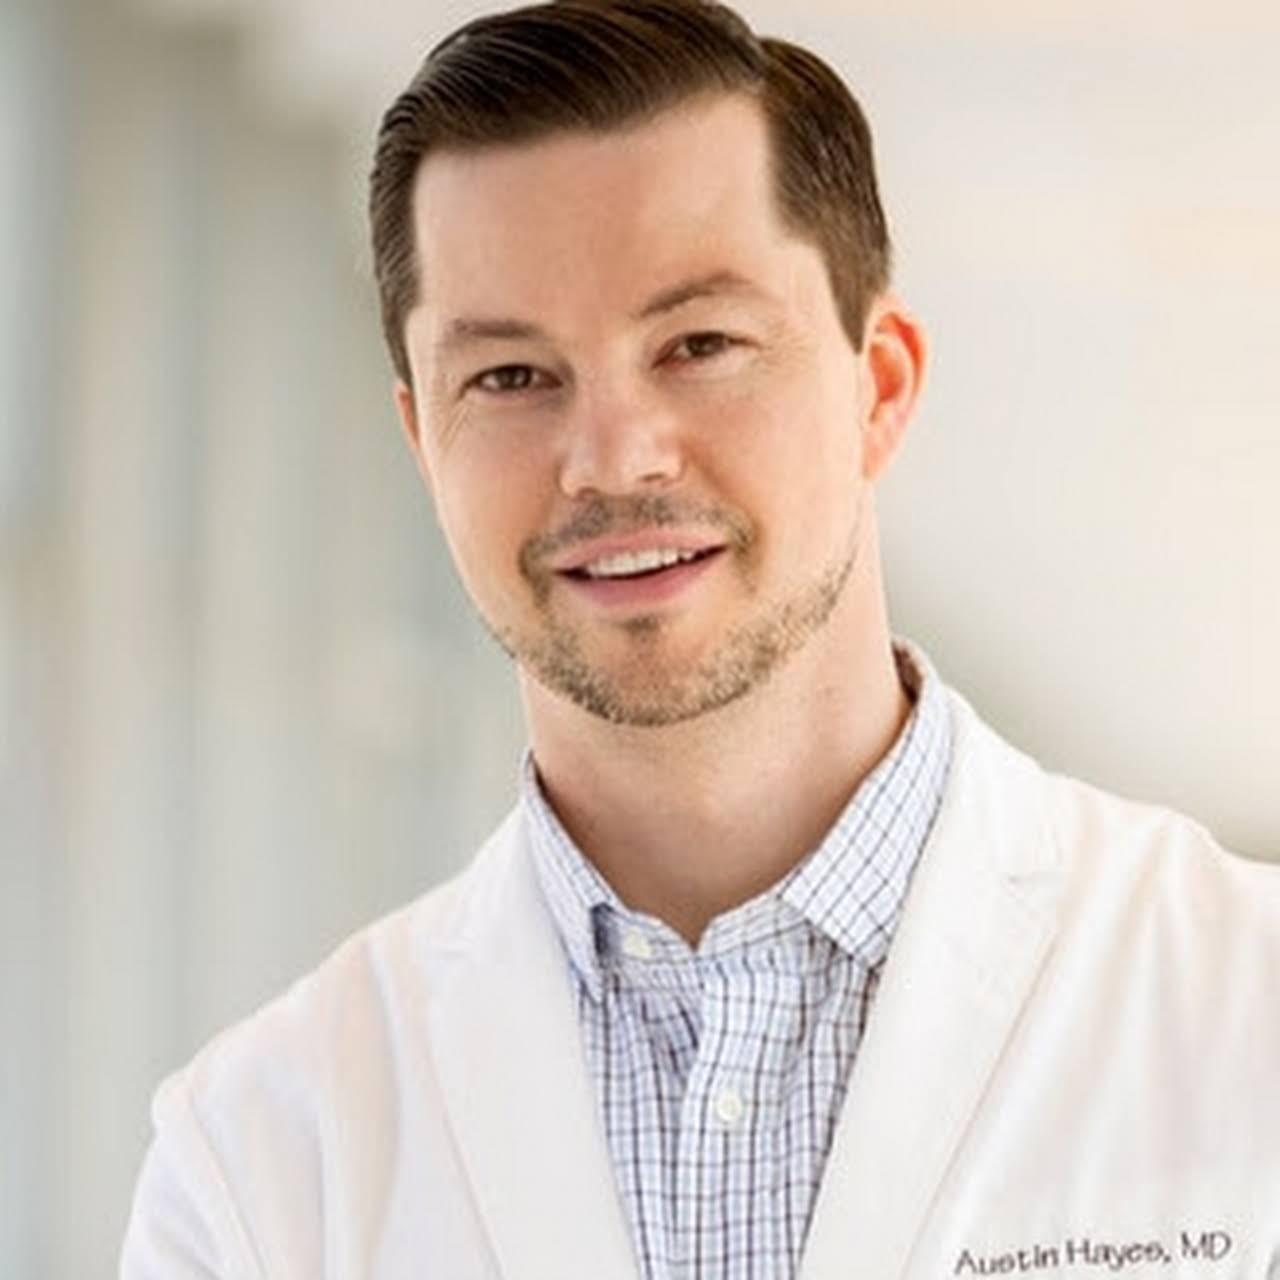 Austin Hayes, MD : Breast Augmentation, Liposuction, Tummy Tuck